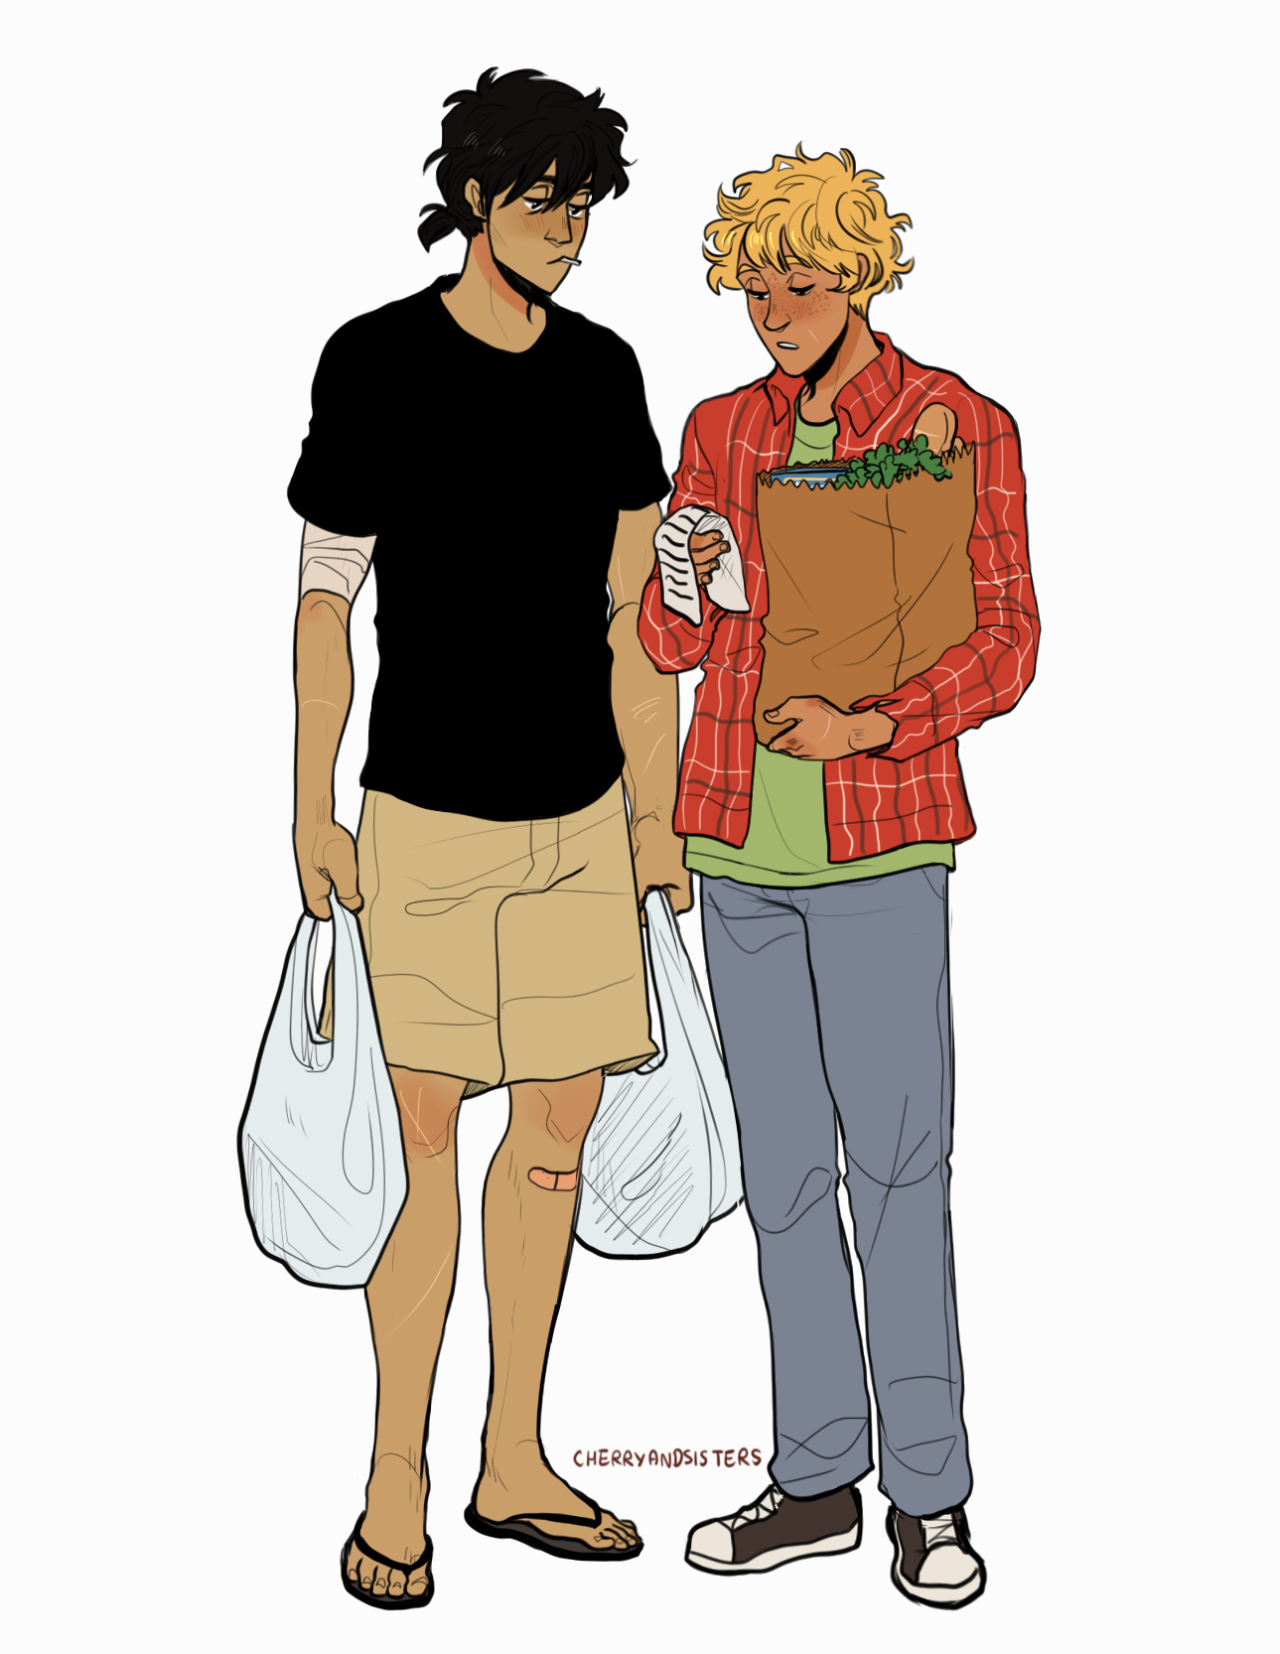 nico and will doing simple domestic stuff like shopping for groceries just. gives me joy